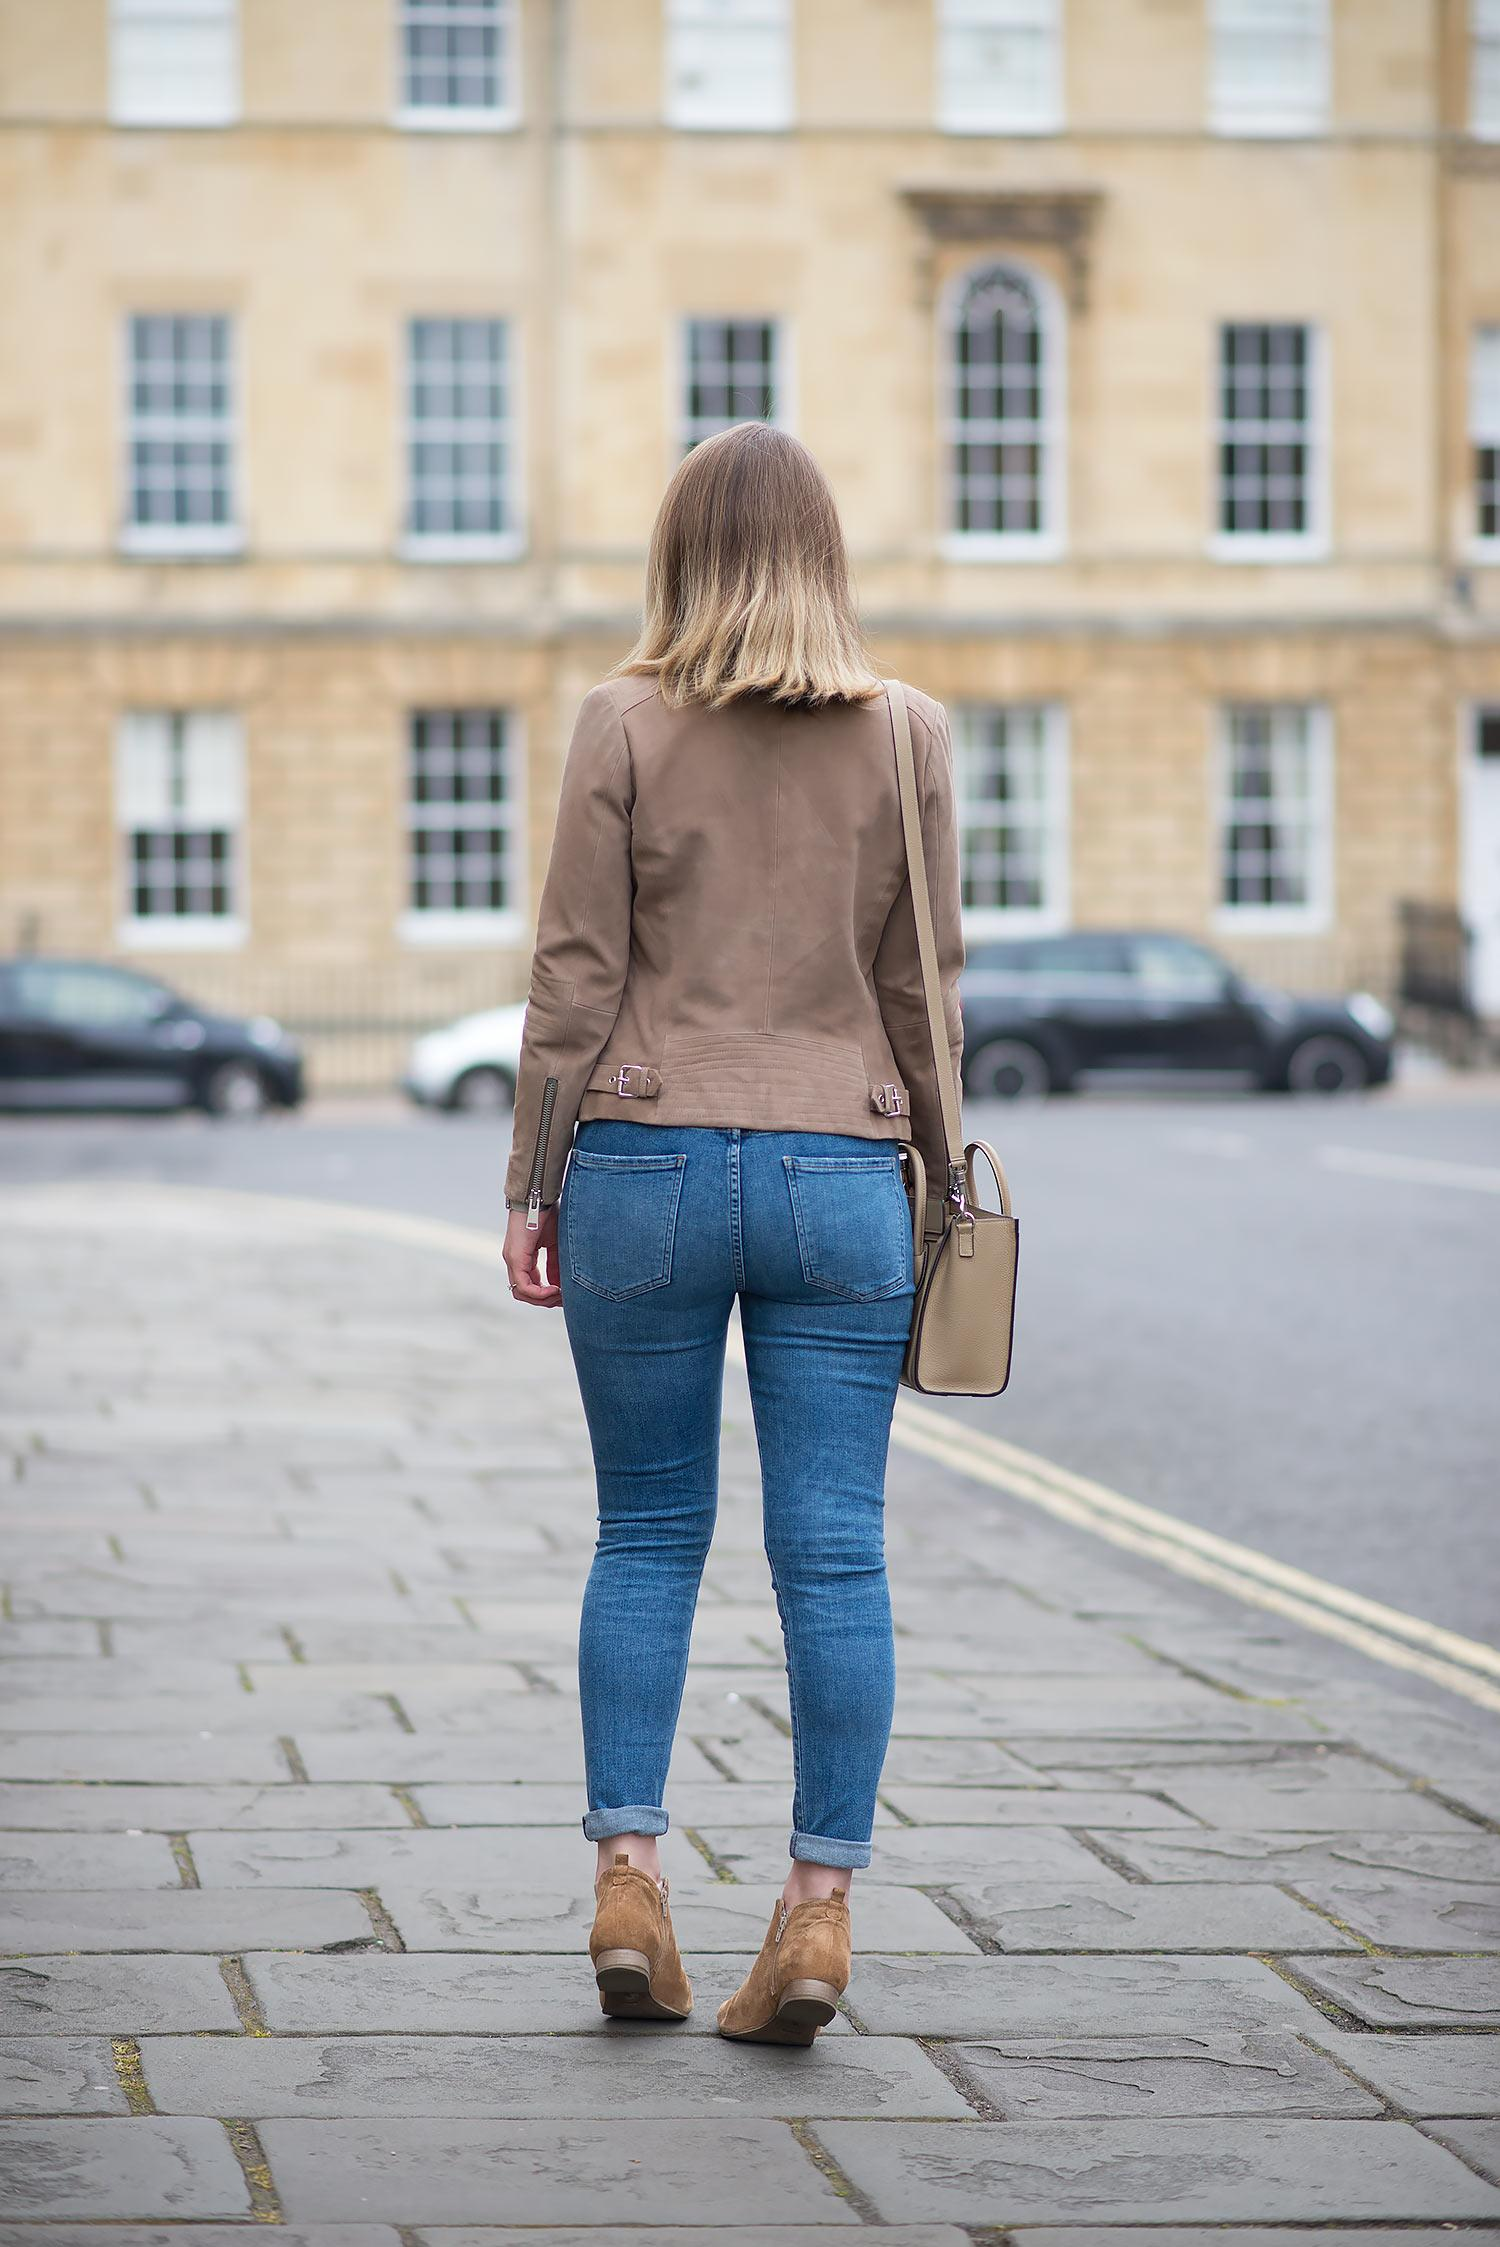 Reiss Sophie Suede Jacket With Agolde Sophie Jeans